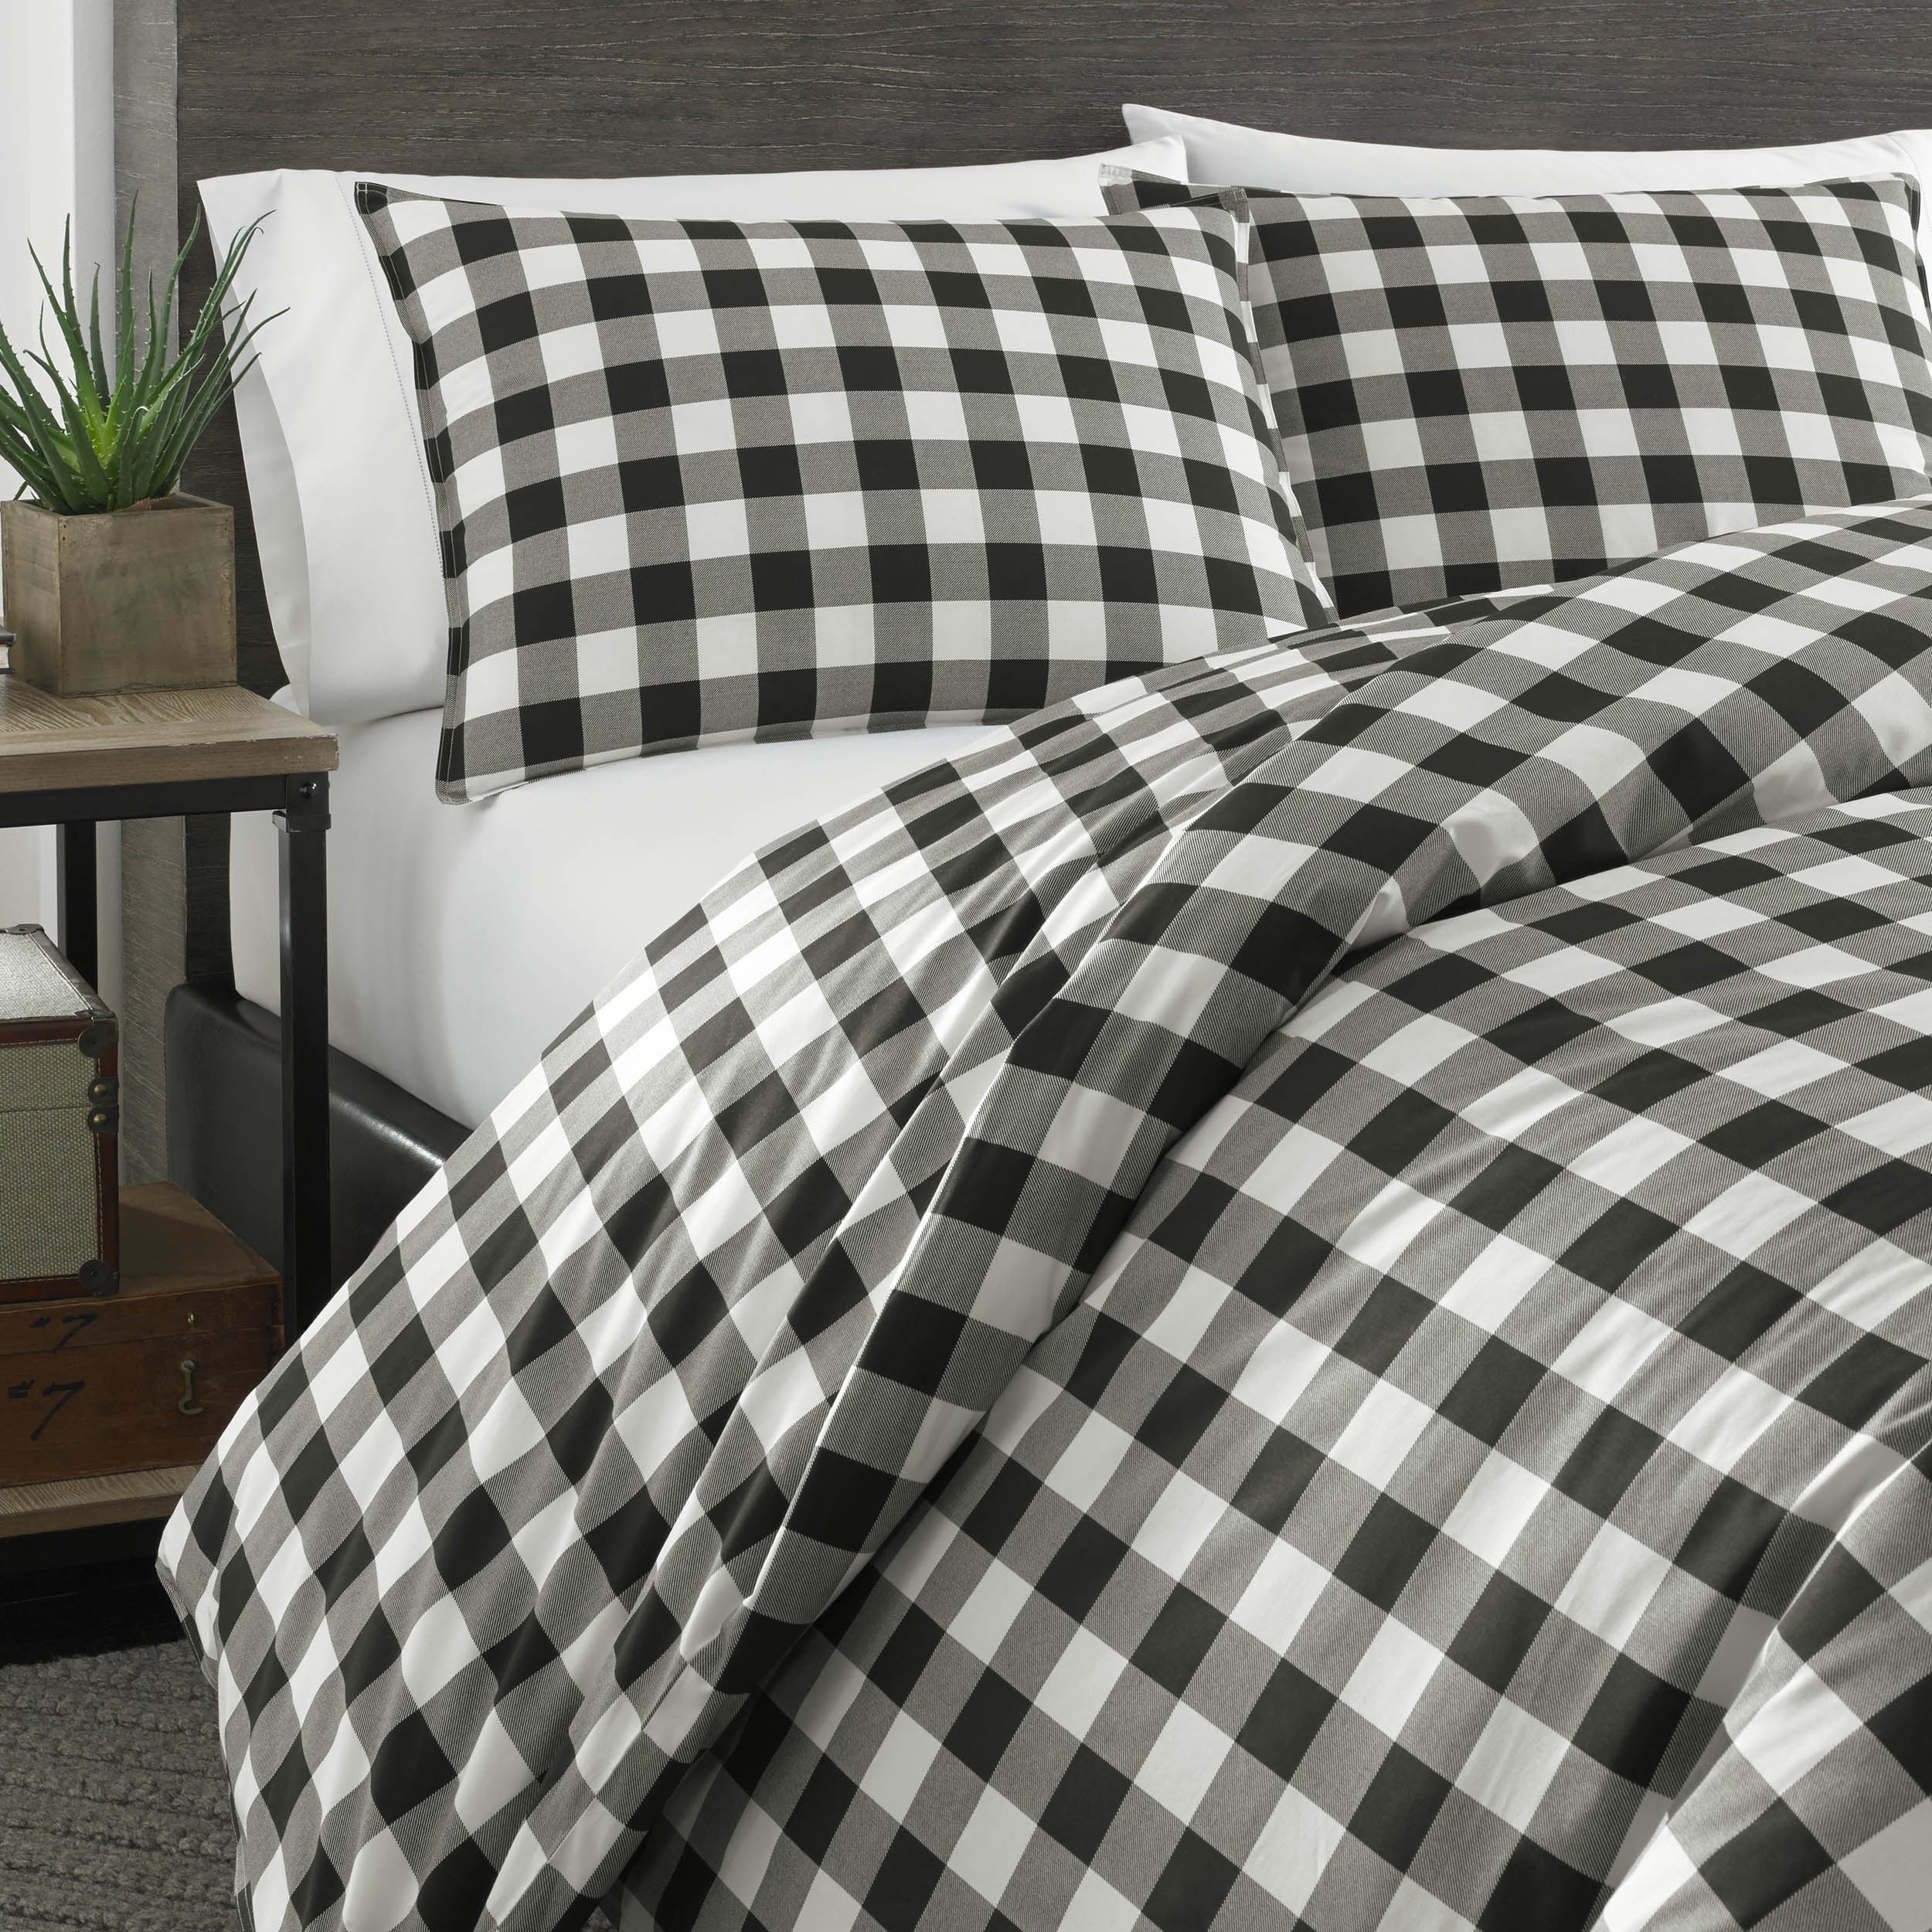 sets for sidetable bed bedding comforter classy and furniture also wooden headboard plus bauer rugs eddie with pillows plaid floor bedroom engaging ideas